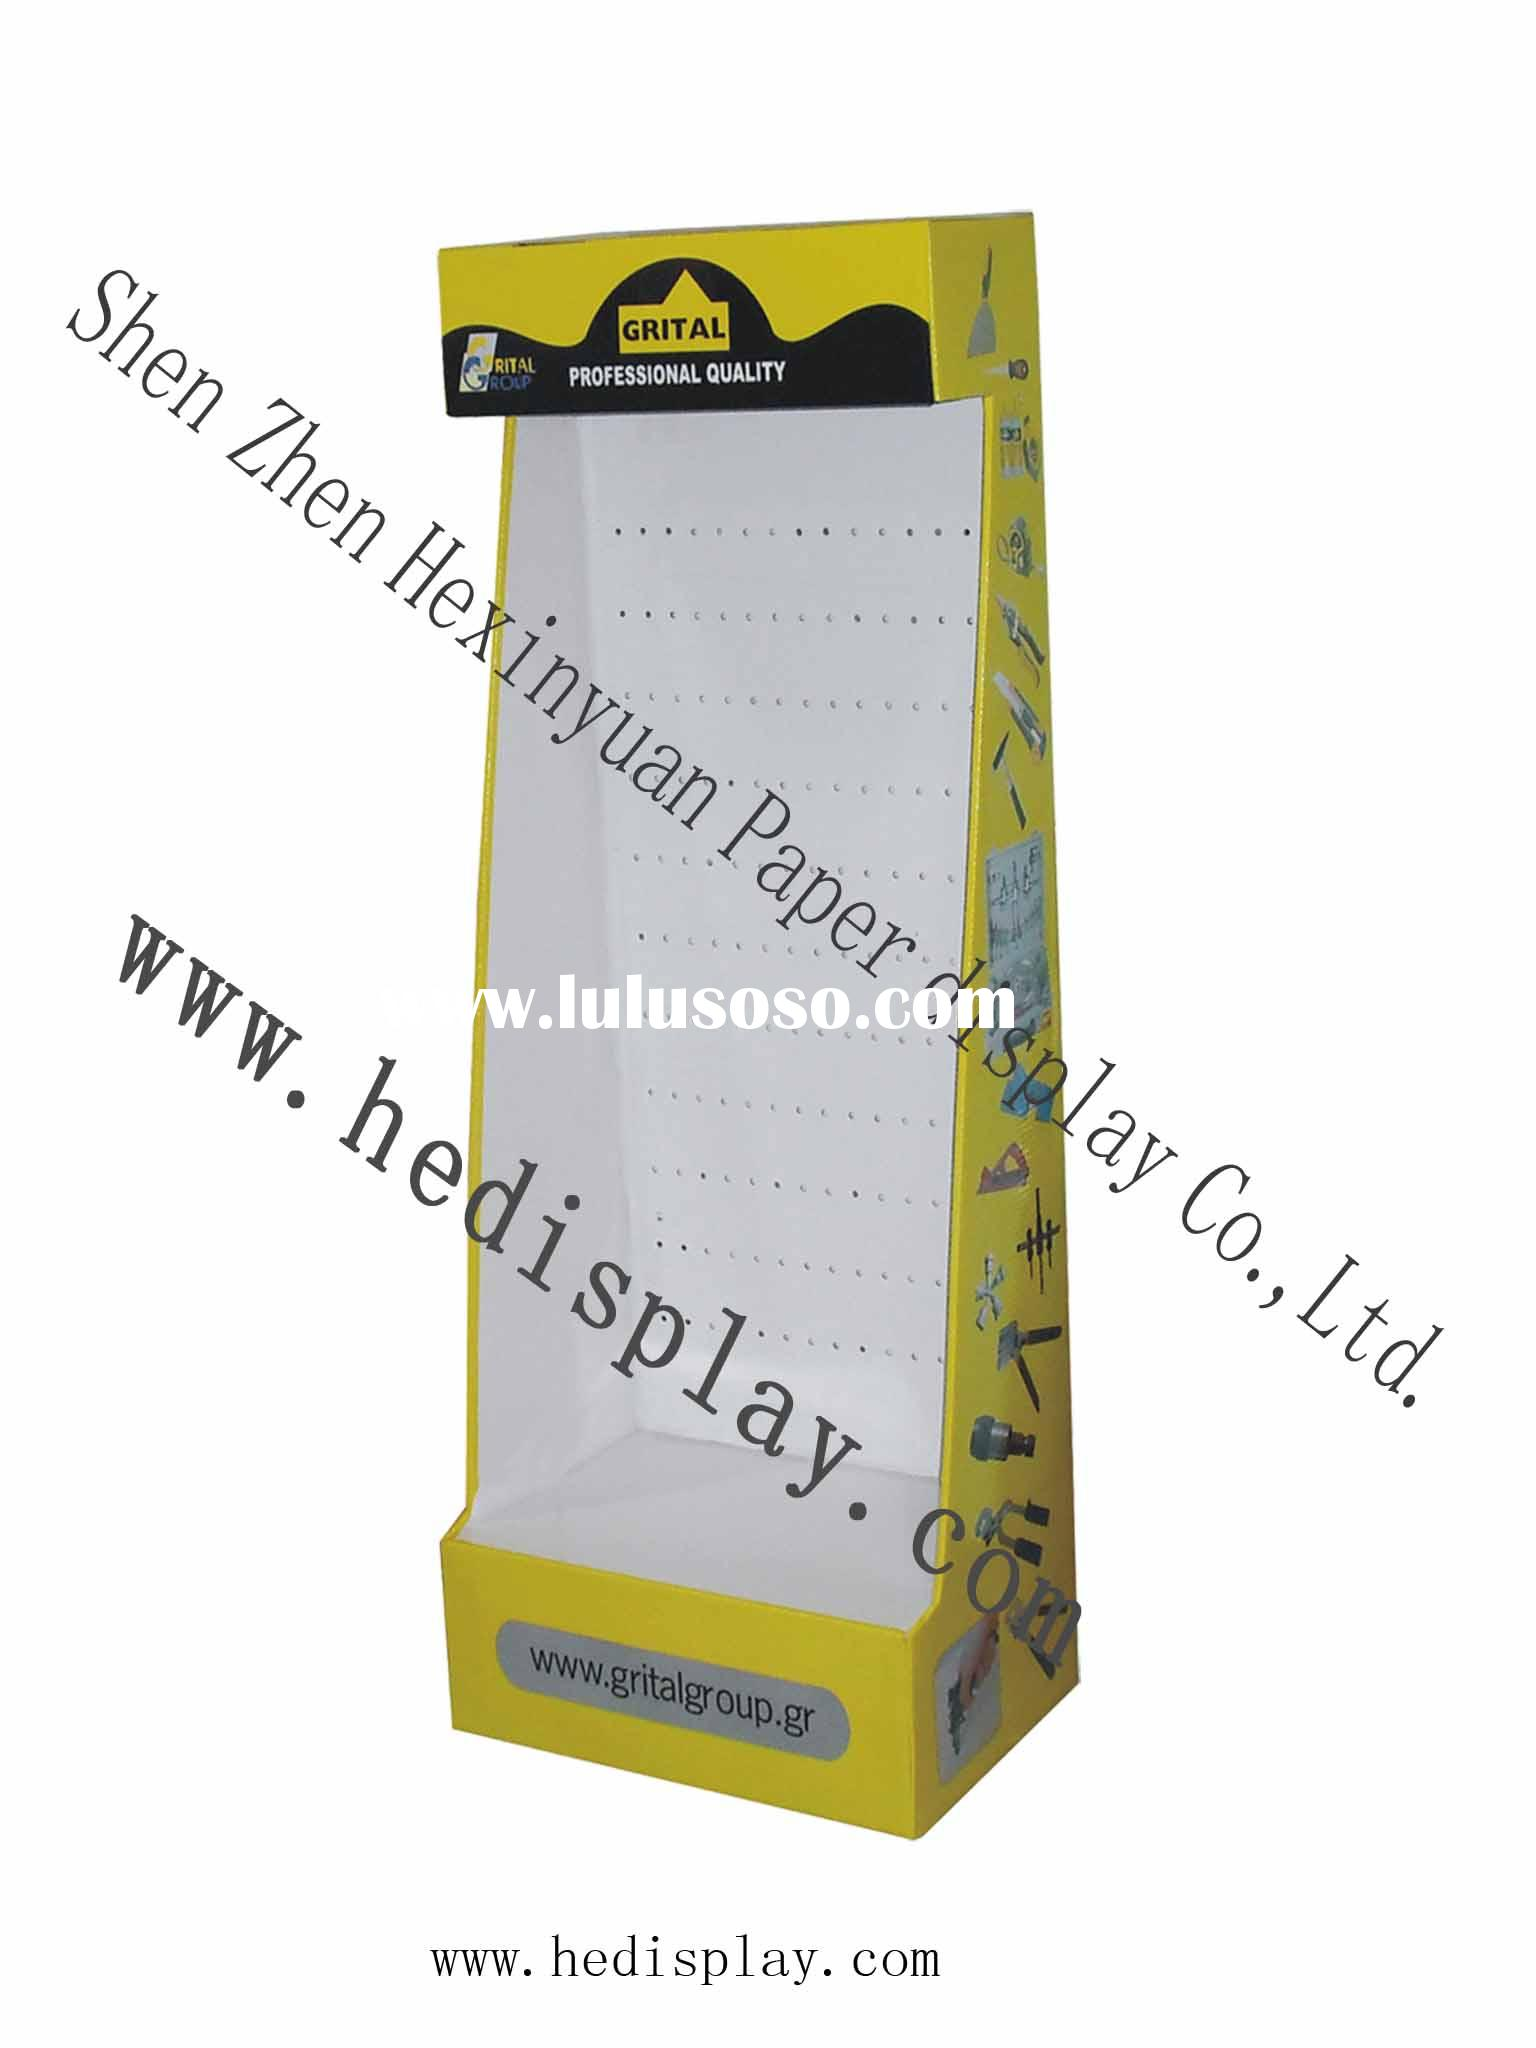 retail display, point of purchase, chain store display